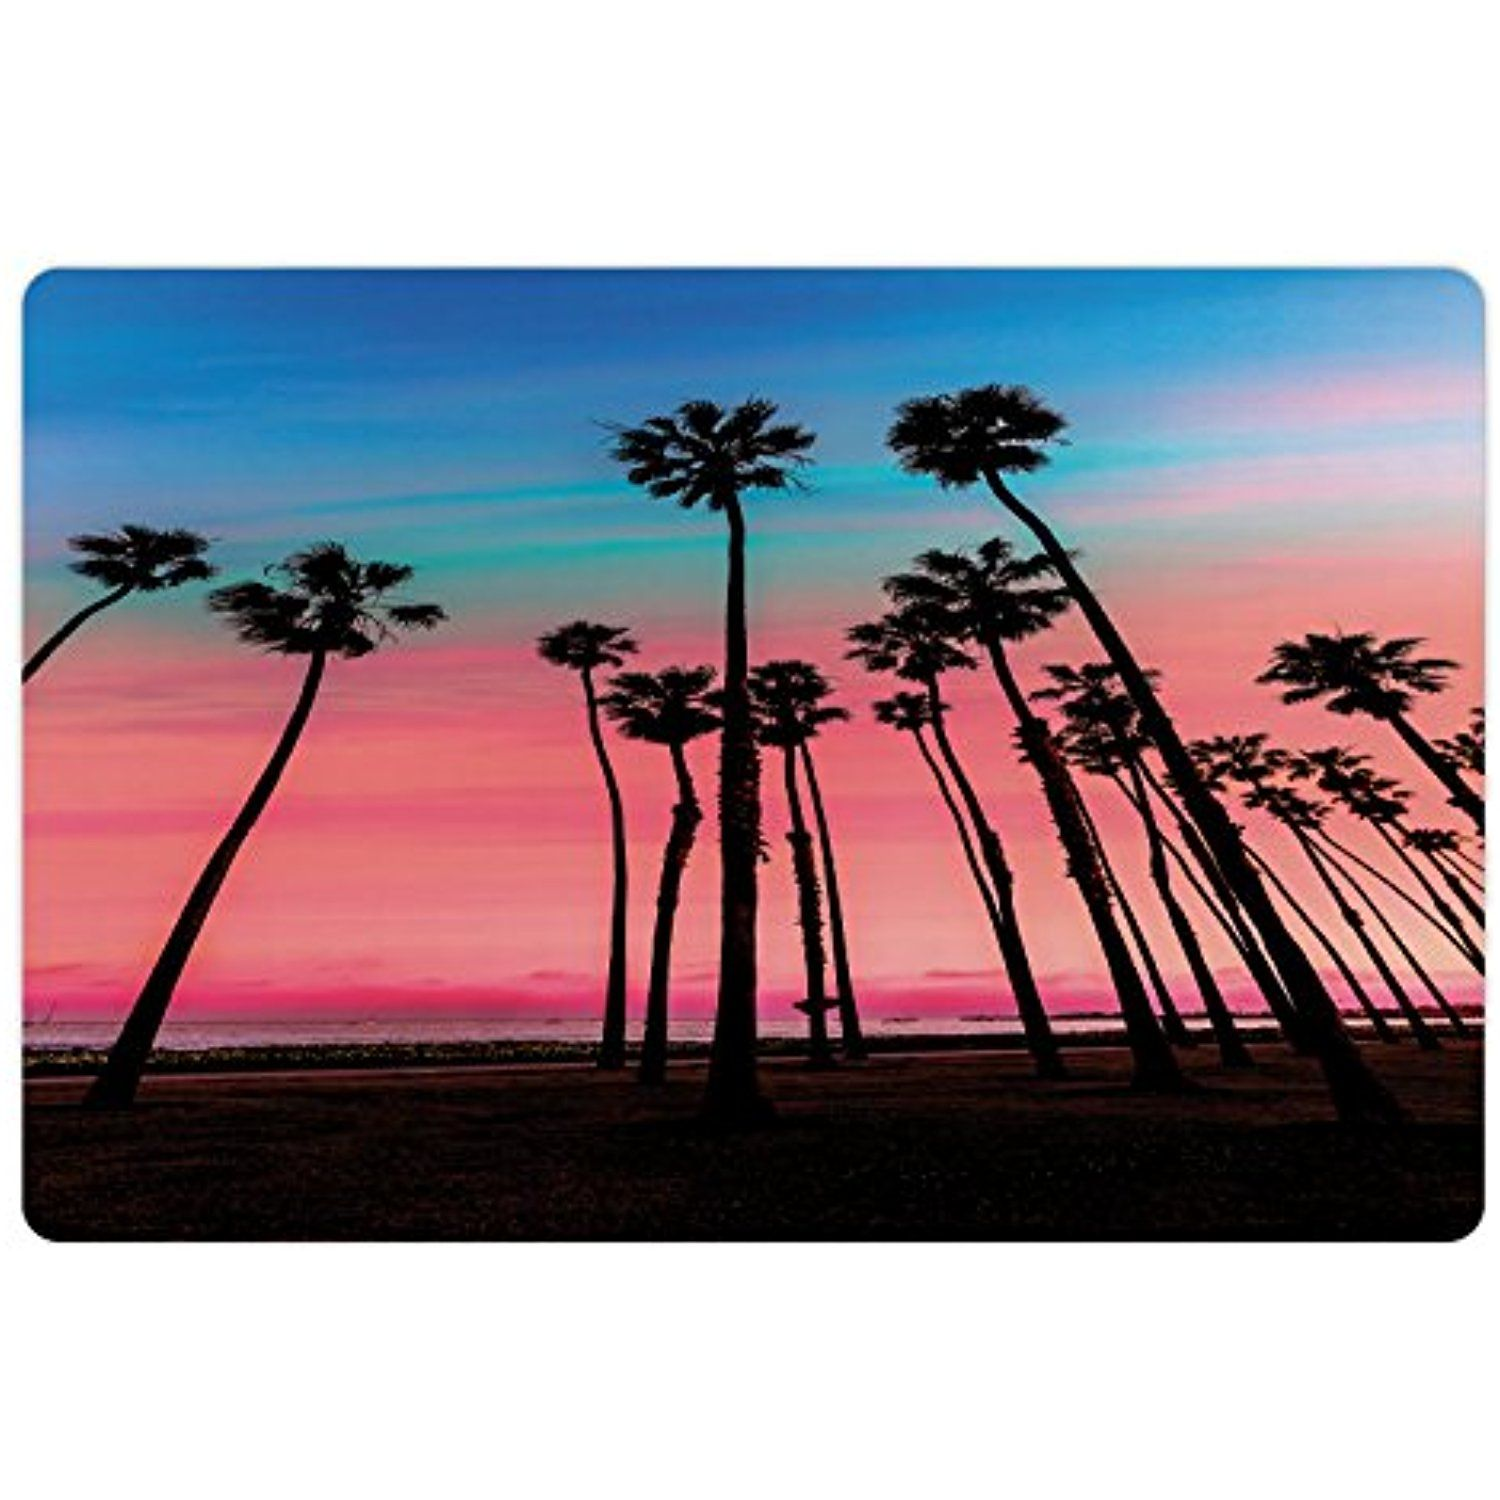 1500x1500 Palm Tree Pet Mats For Food And Water By Lunarable, Tree Rows